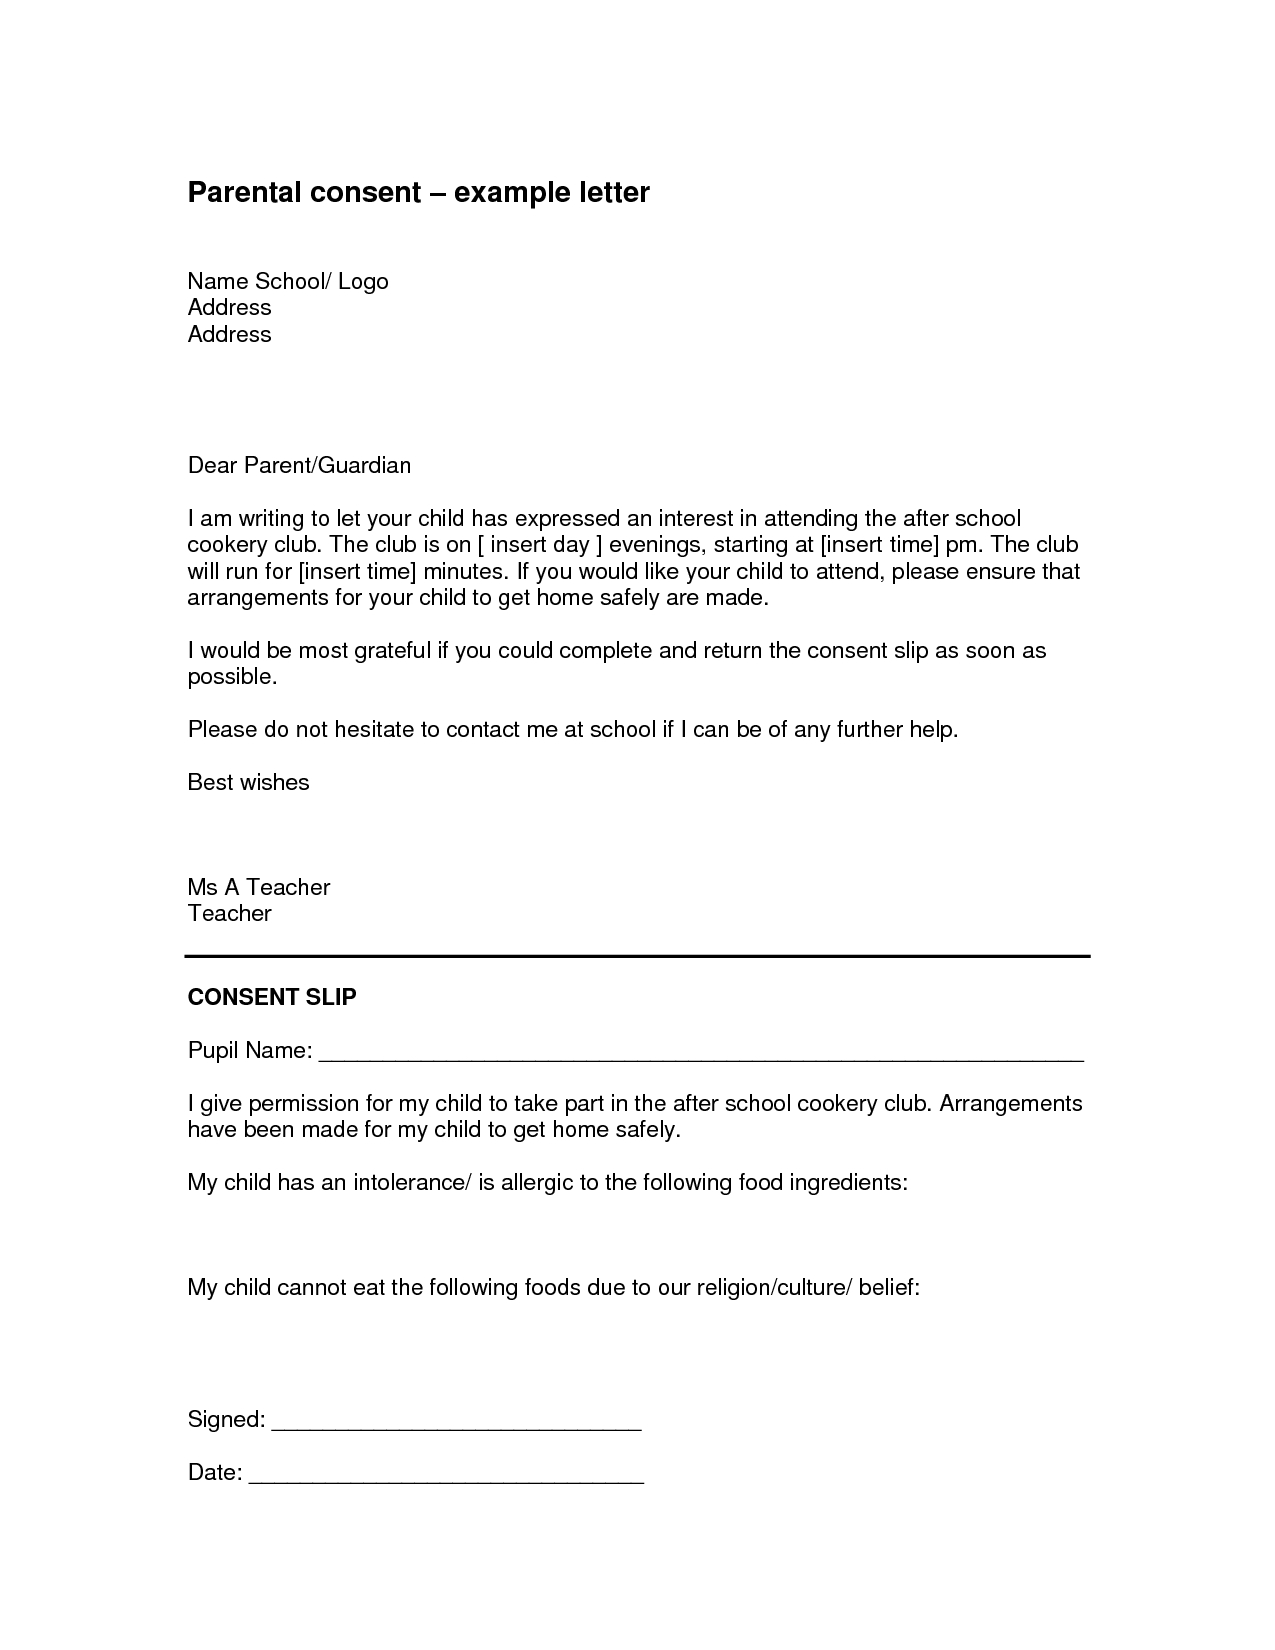 travel consent letter template Collection-Parental Authorization Letter For example children travelling alone with groups or with only one custodial parent should travel with a consent letter 12-t